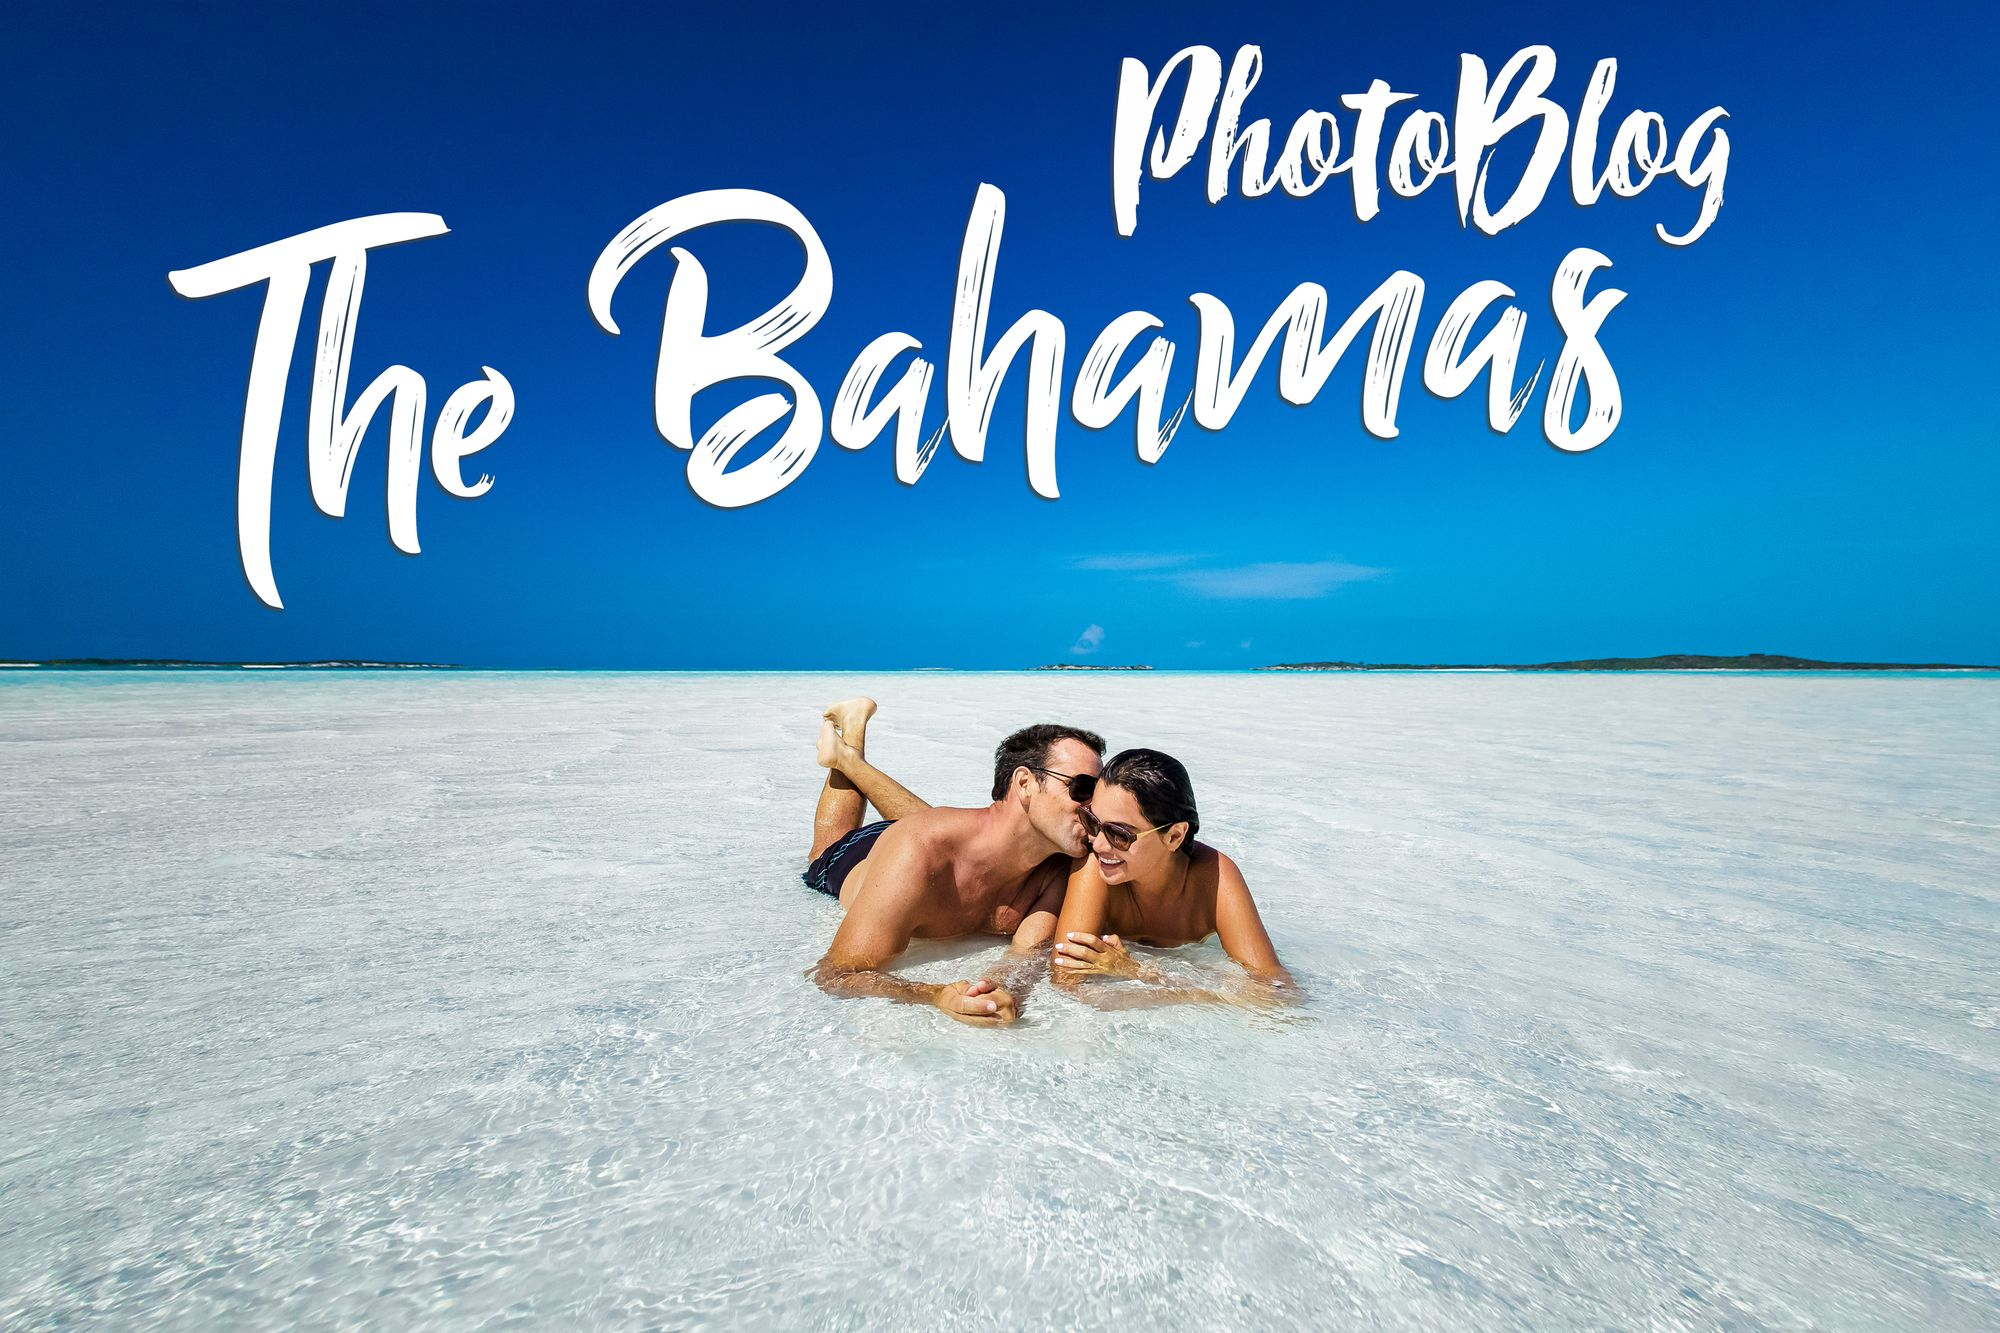 33 Pictures That Will Make You Fall In Love With The Bahamas